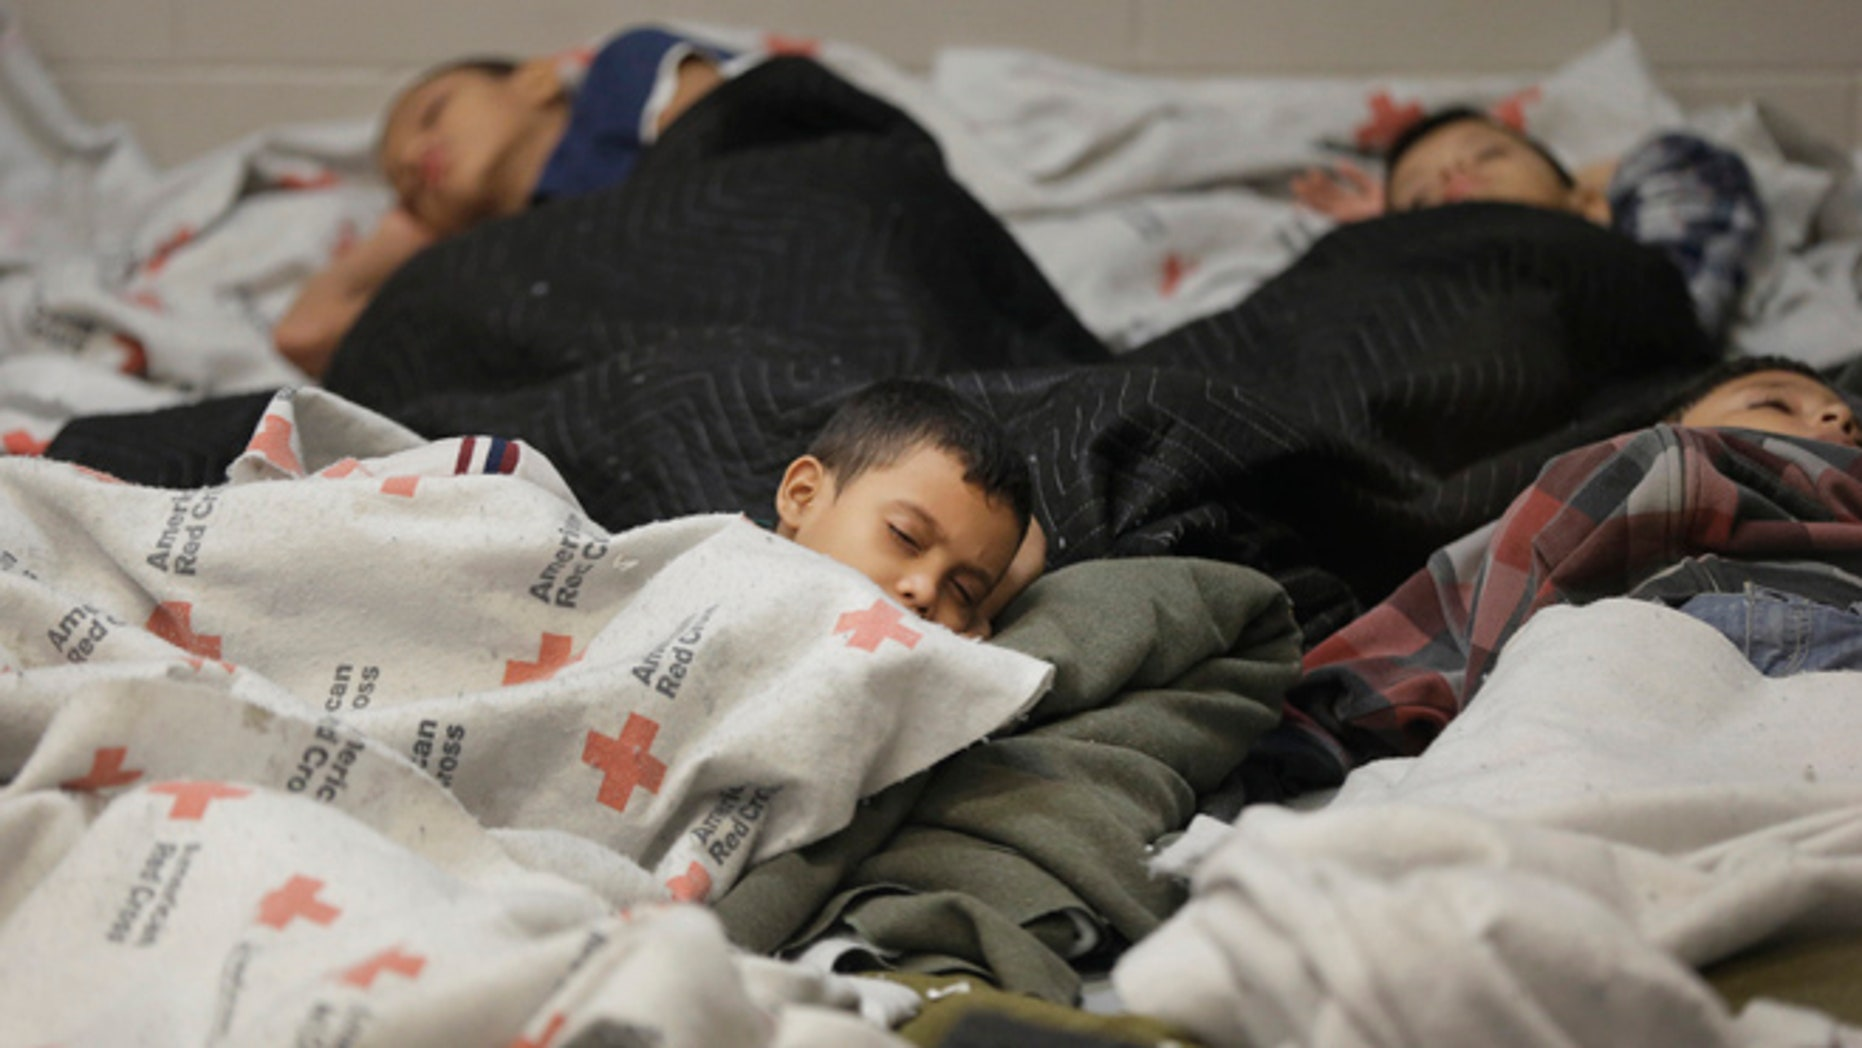 June 18, 2014: Children detainees sleep in a holding cell at a U.S. Customs and Border Protection processing facility in Brownsville, Texas. (AP)